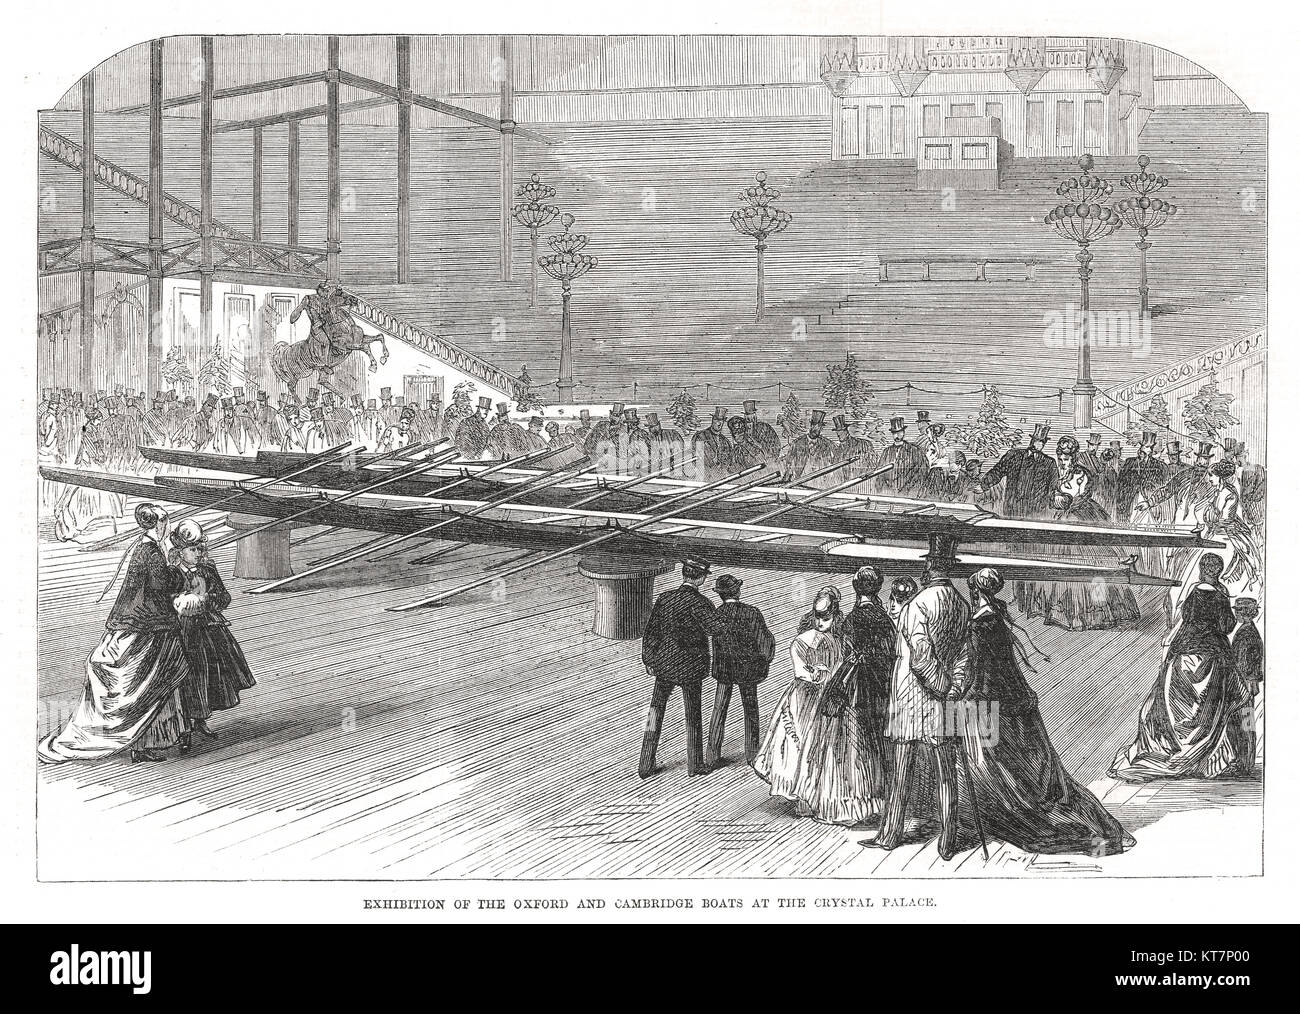 Oxford & Cambridge Boats Boat Race Exhibition, Crystal Palace, 1869 - Stock Image